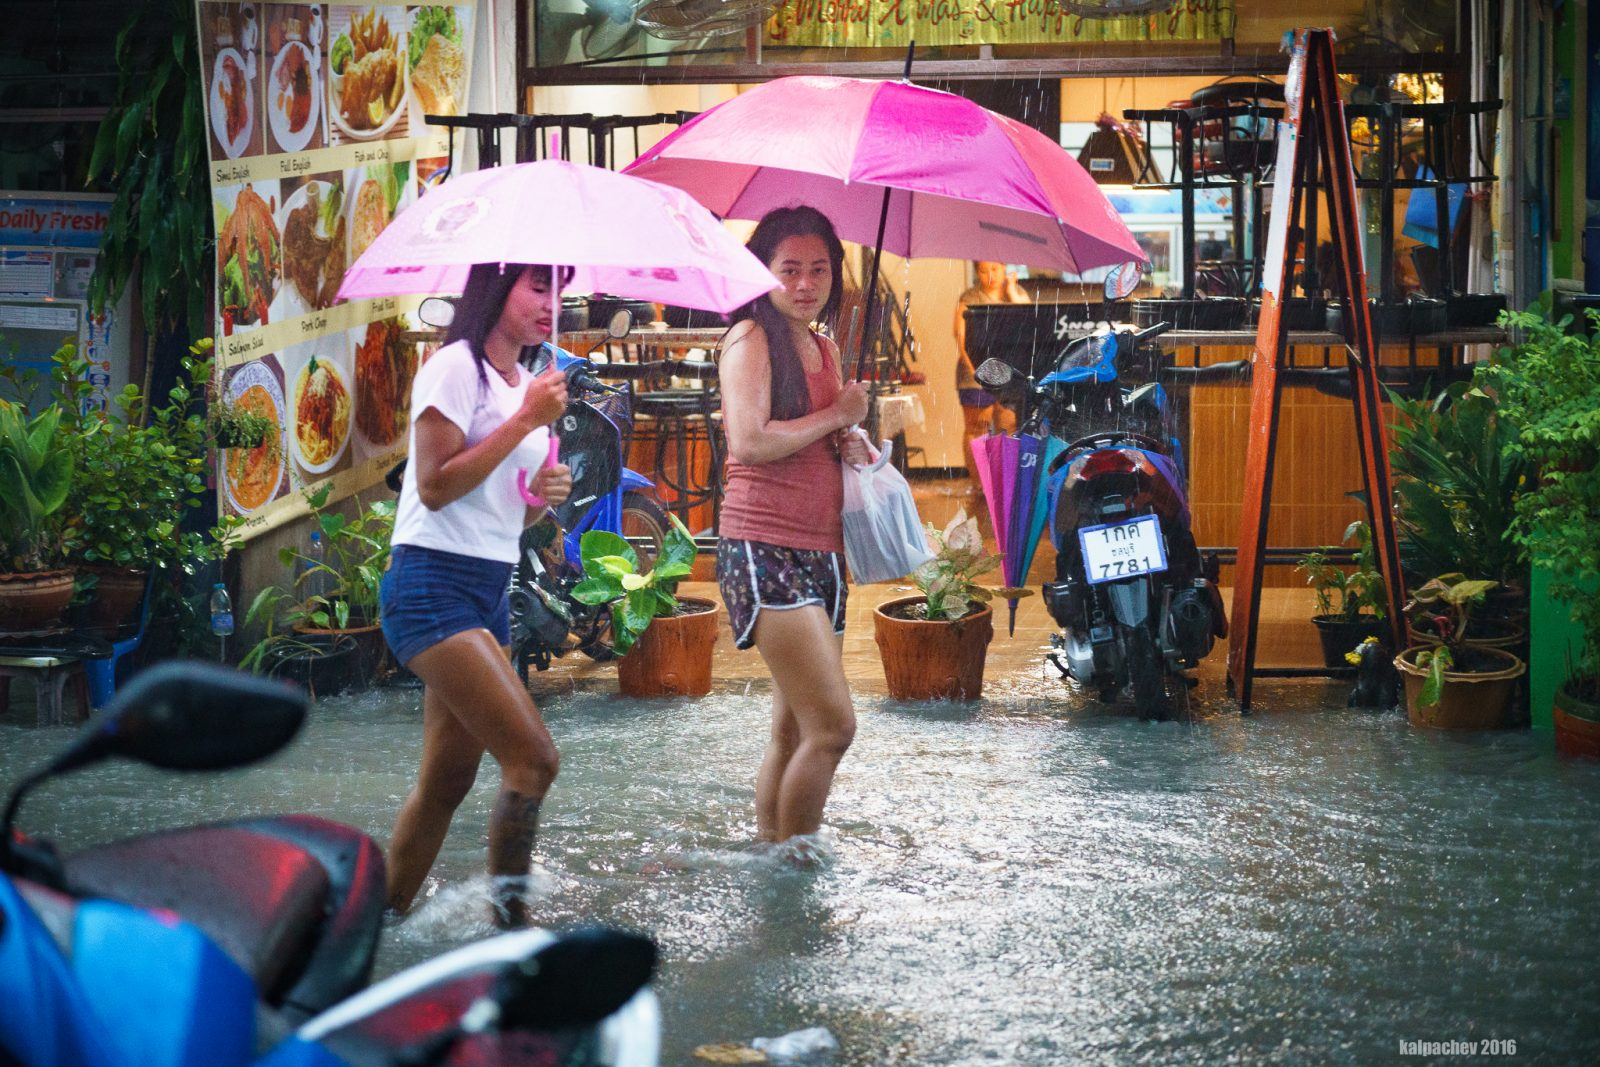 Flood in Pattaya 26 Oct 2016